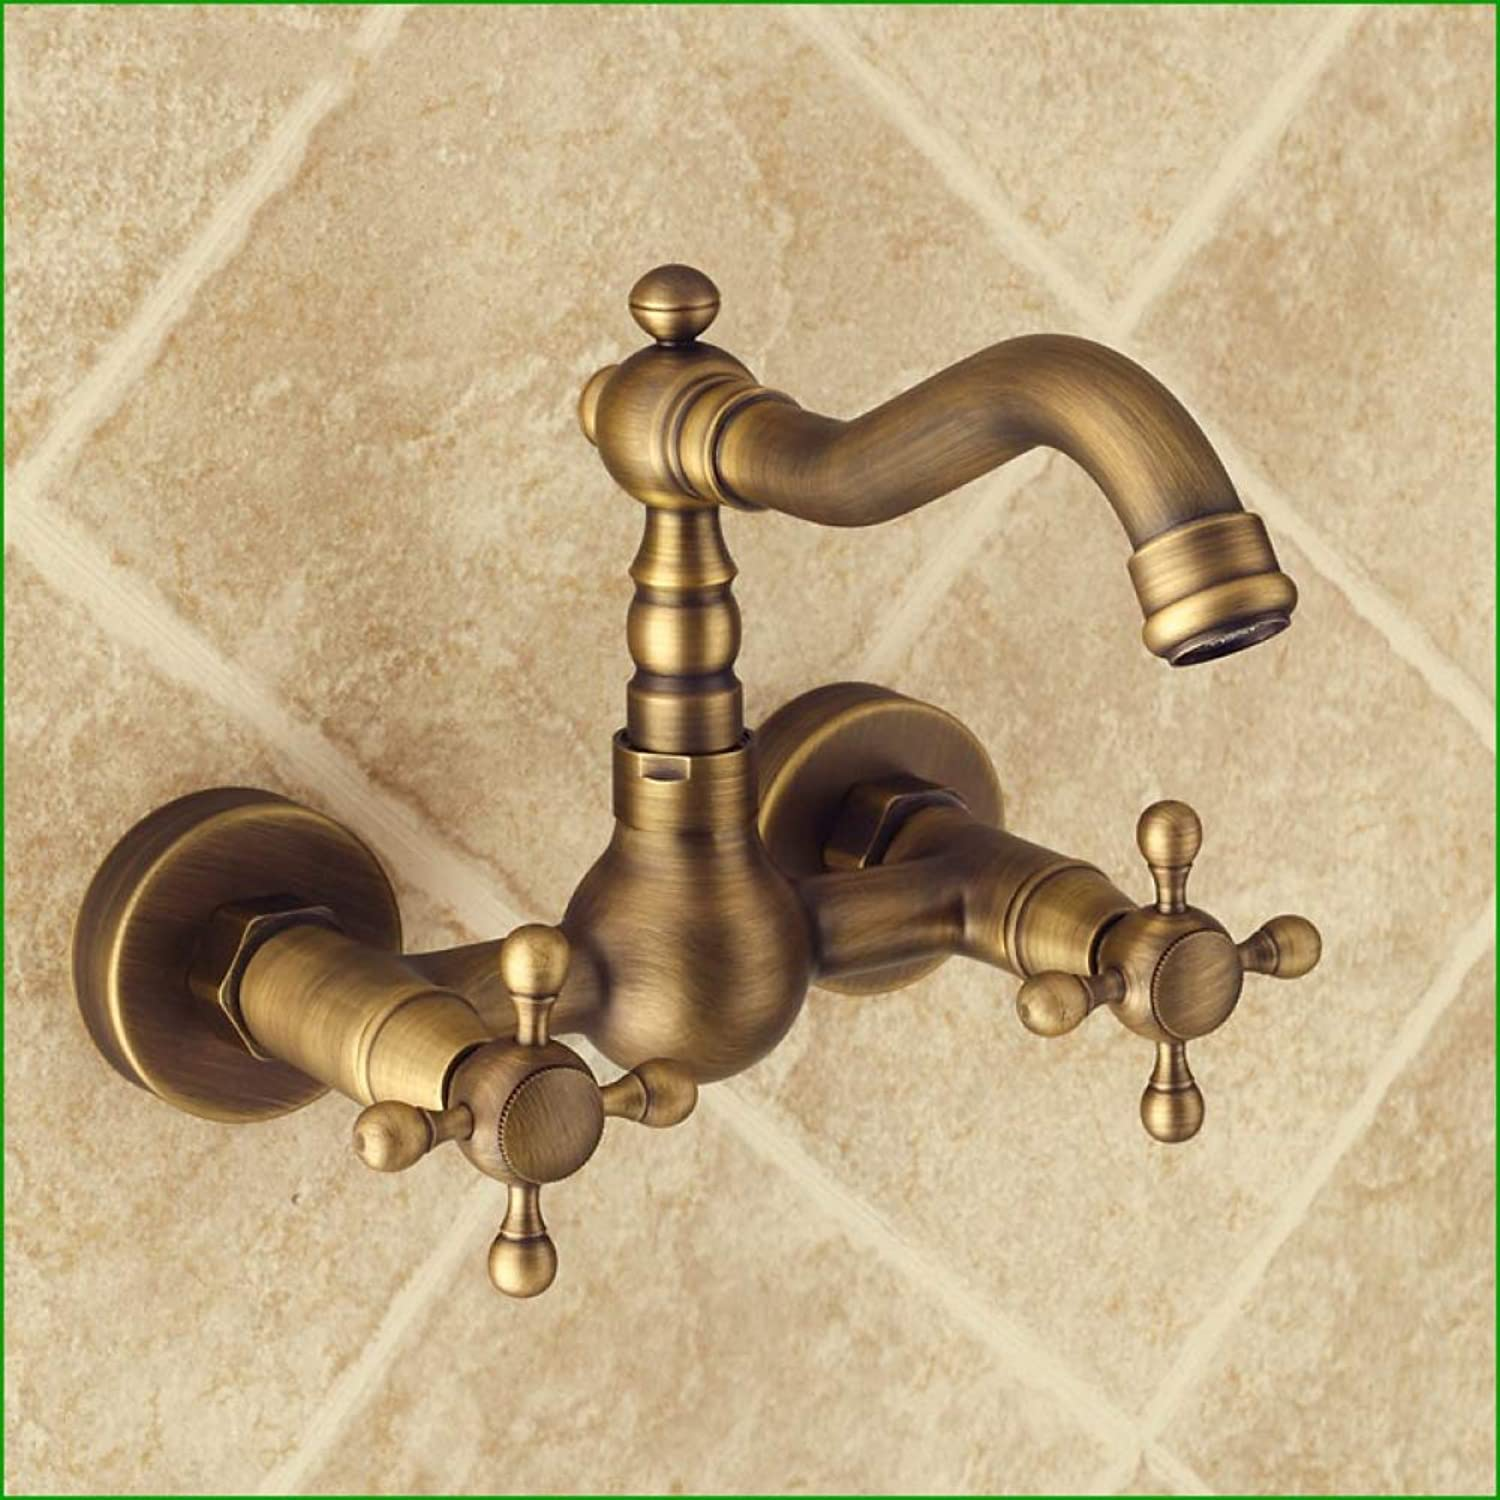 LPW faucet all copper wall high-end retro faucet hot cold mixed water redating faucet